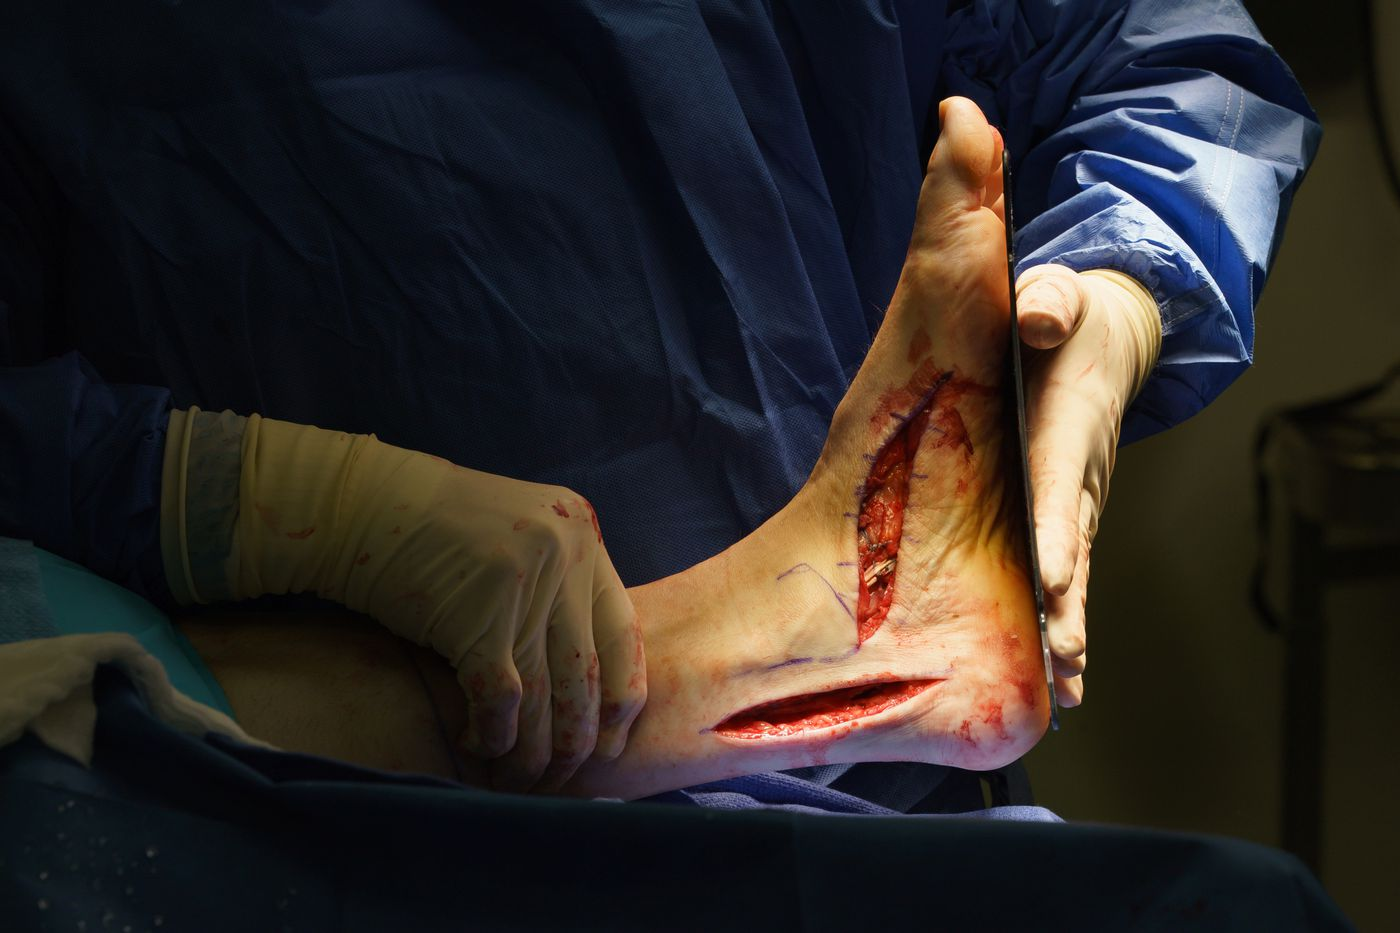 The fix for foot pain could be a surgery you didn't know about